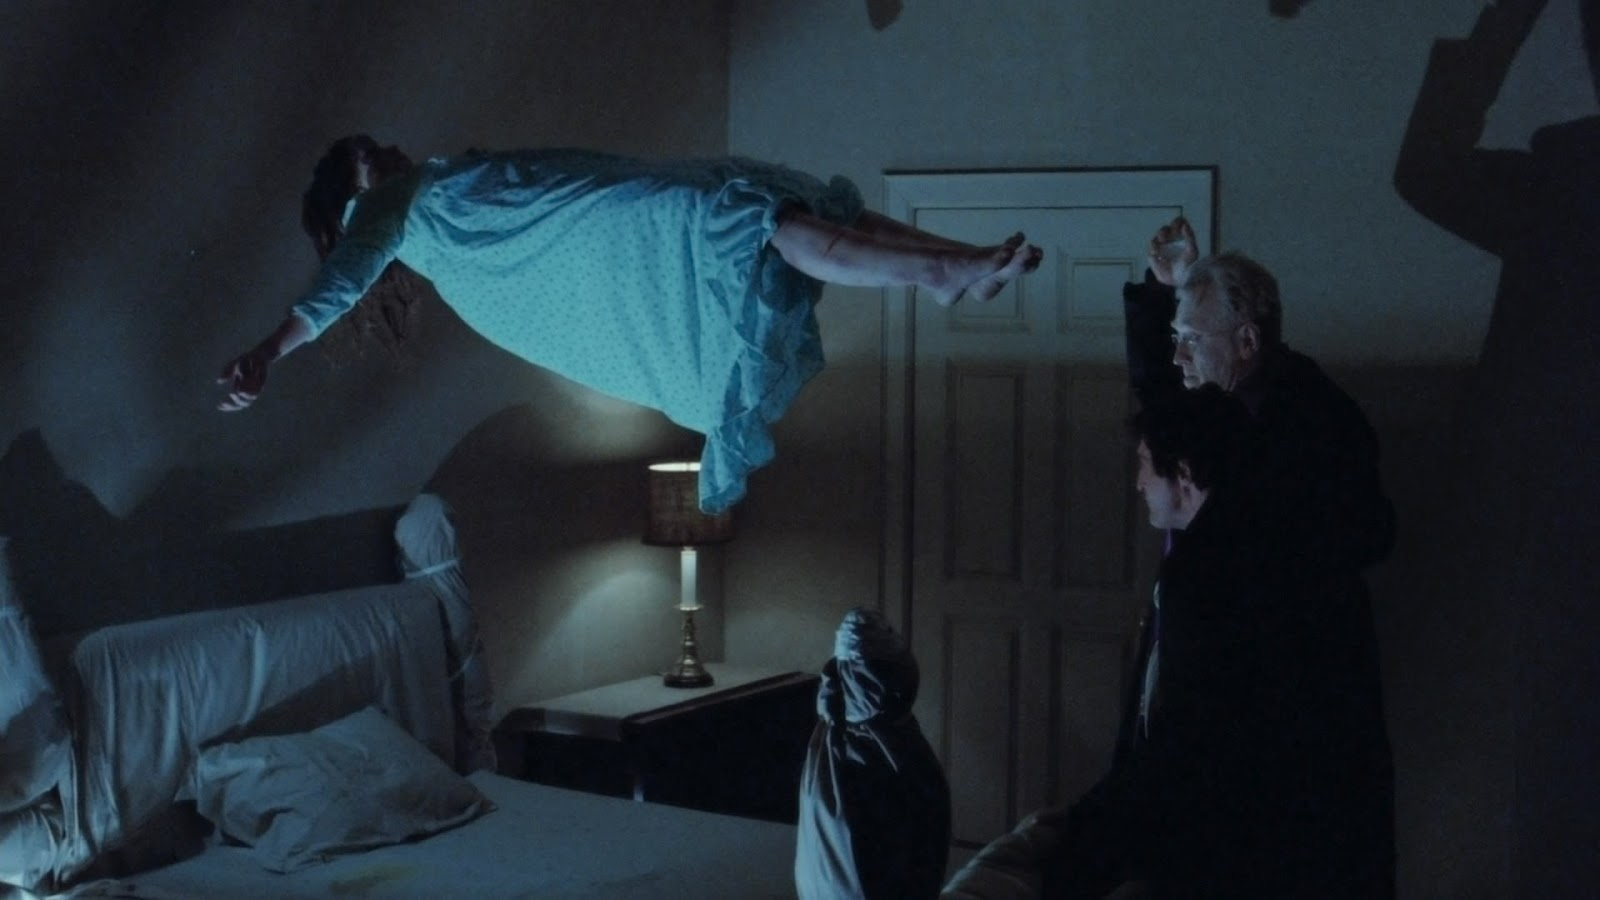 Photo courtesy of http://www.filmicsite.com/2016/01/03/the-exorcist-an-analysis/